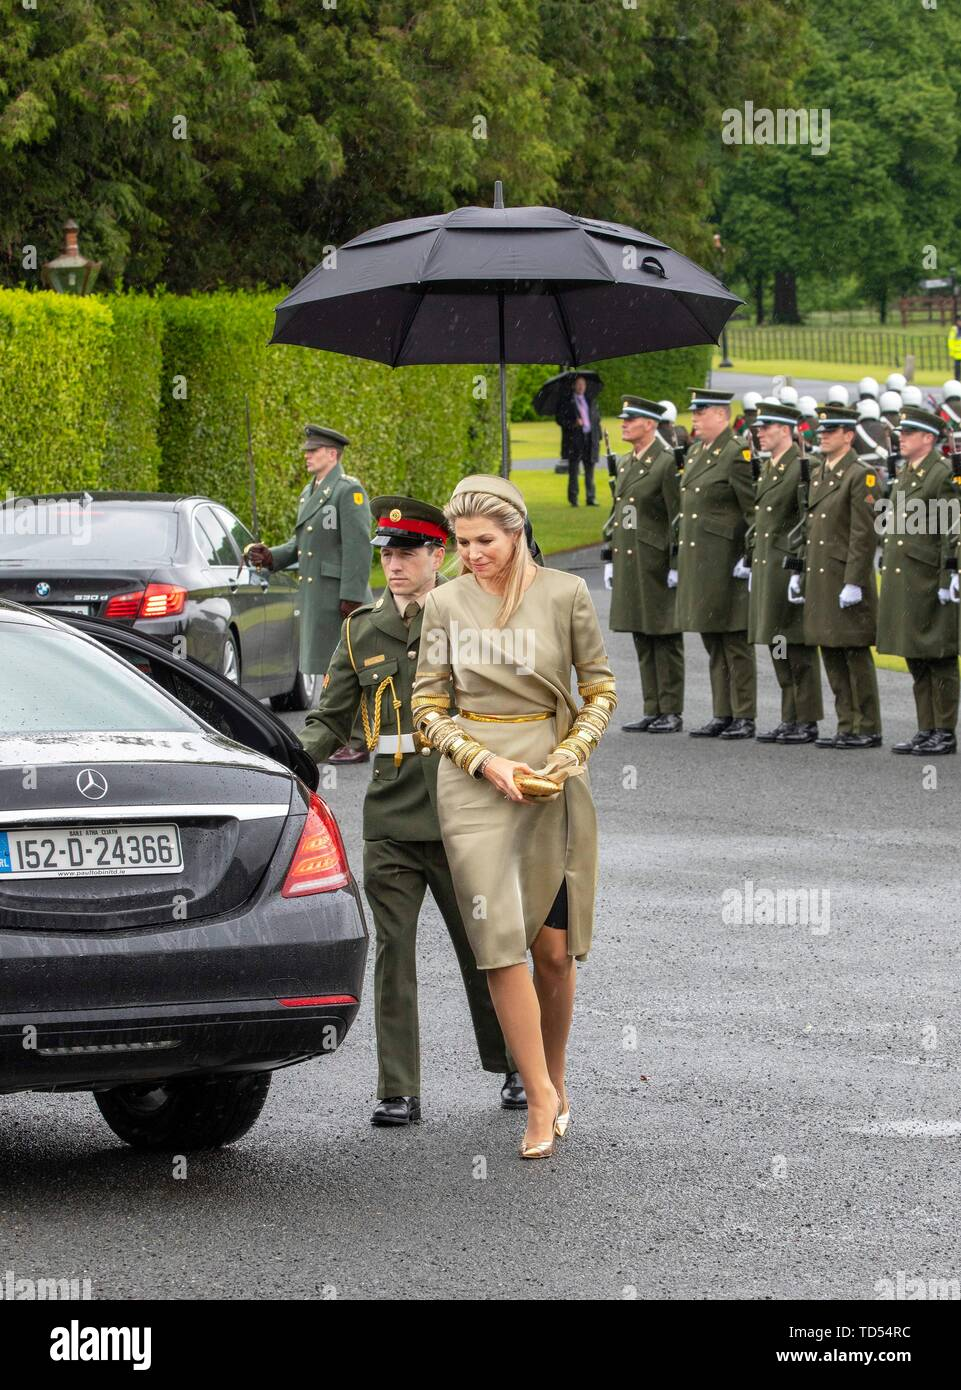 Dublin, Ireland. 12th June, 2019. Queen Maxima of The Netherlands are received by President Higgins and his wife Sabina Higgins at A_ras an Uachtara_in, the Presidential Palace in Dublin, on June 12, 2019, at the 1st of a 3 days State-visit to Ireland Photo : Albert Nieboer/ Netherlands OUT/Point de Vue OUT | Credit: dpa/Alamy Live News - Stock Image